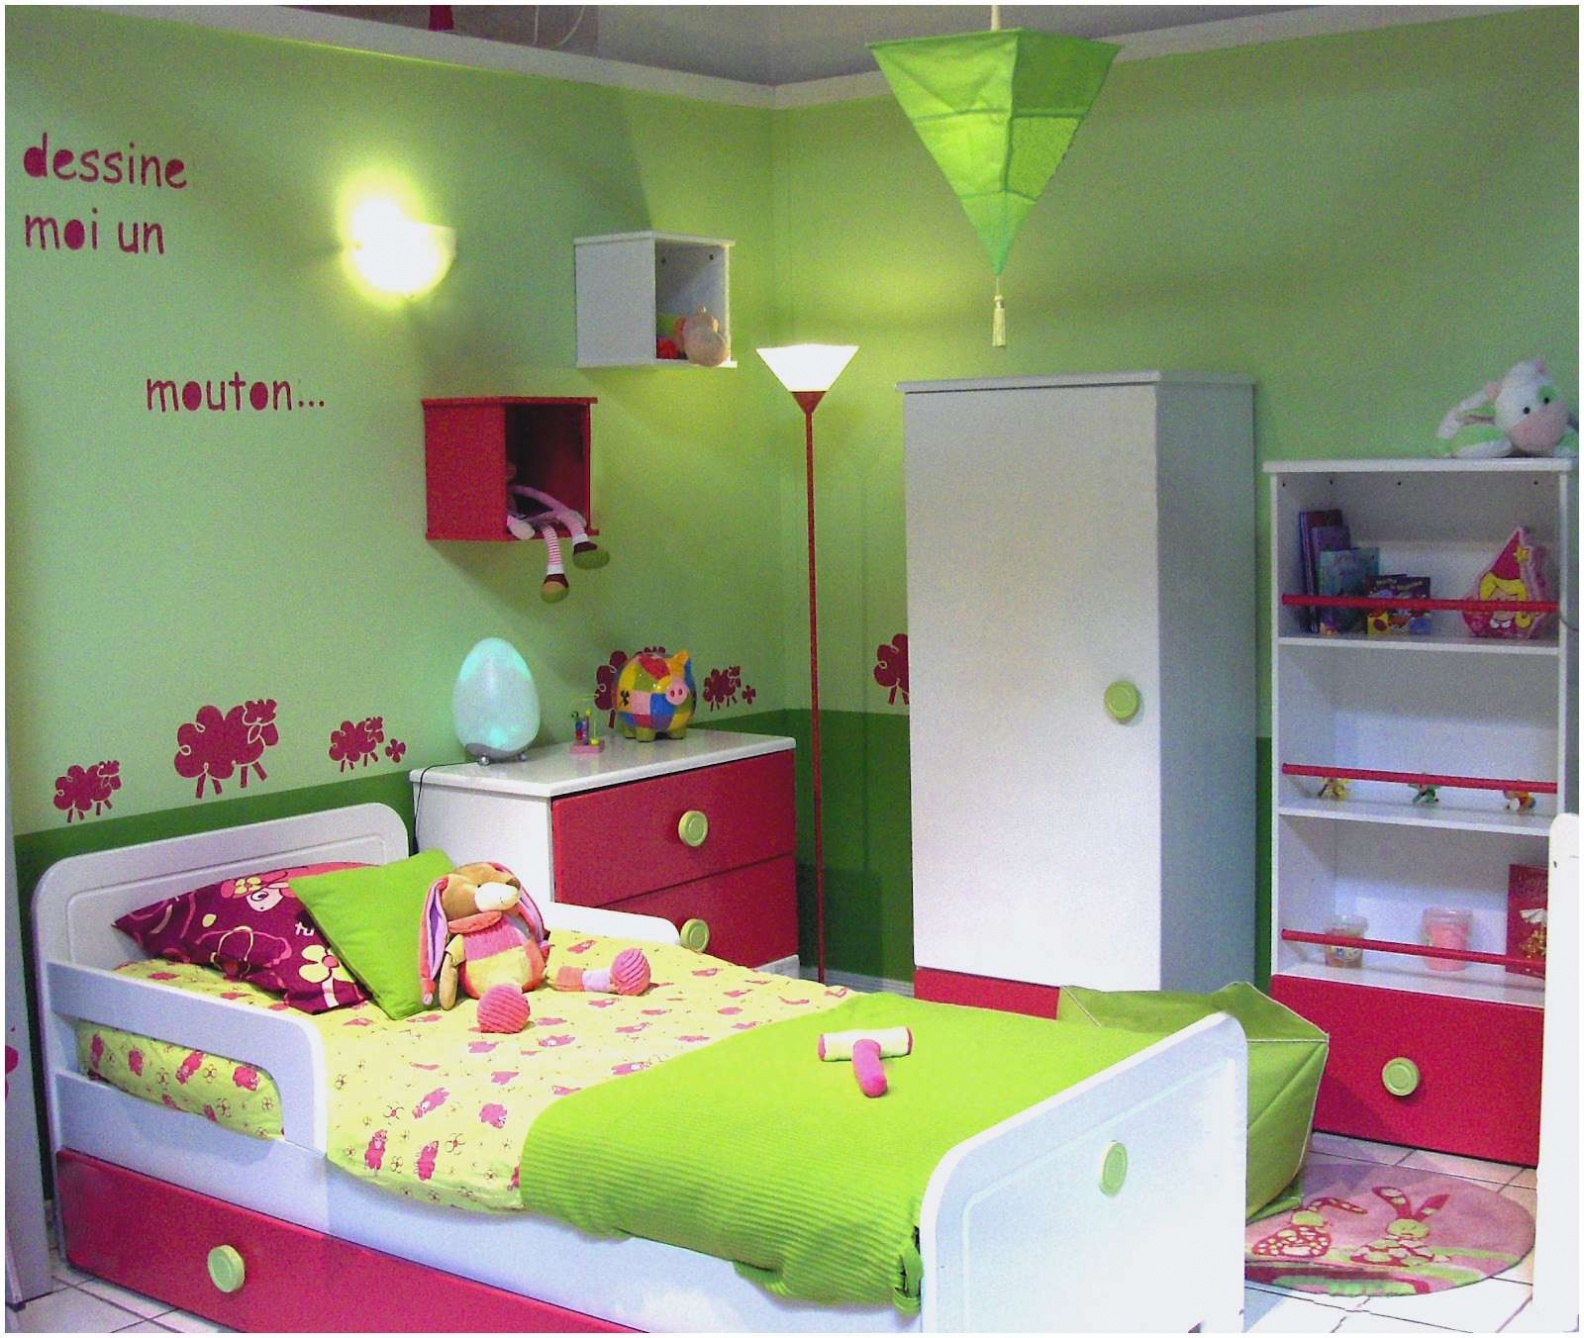 le meilleur de 20 beautiful idee chambre fille pour excellent idee idee chambre d ado fille of idee chambre d ado fille